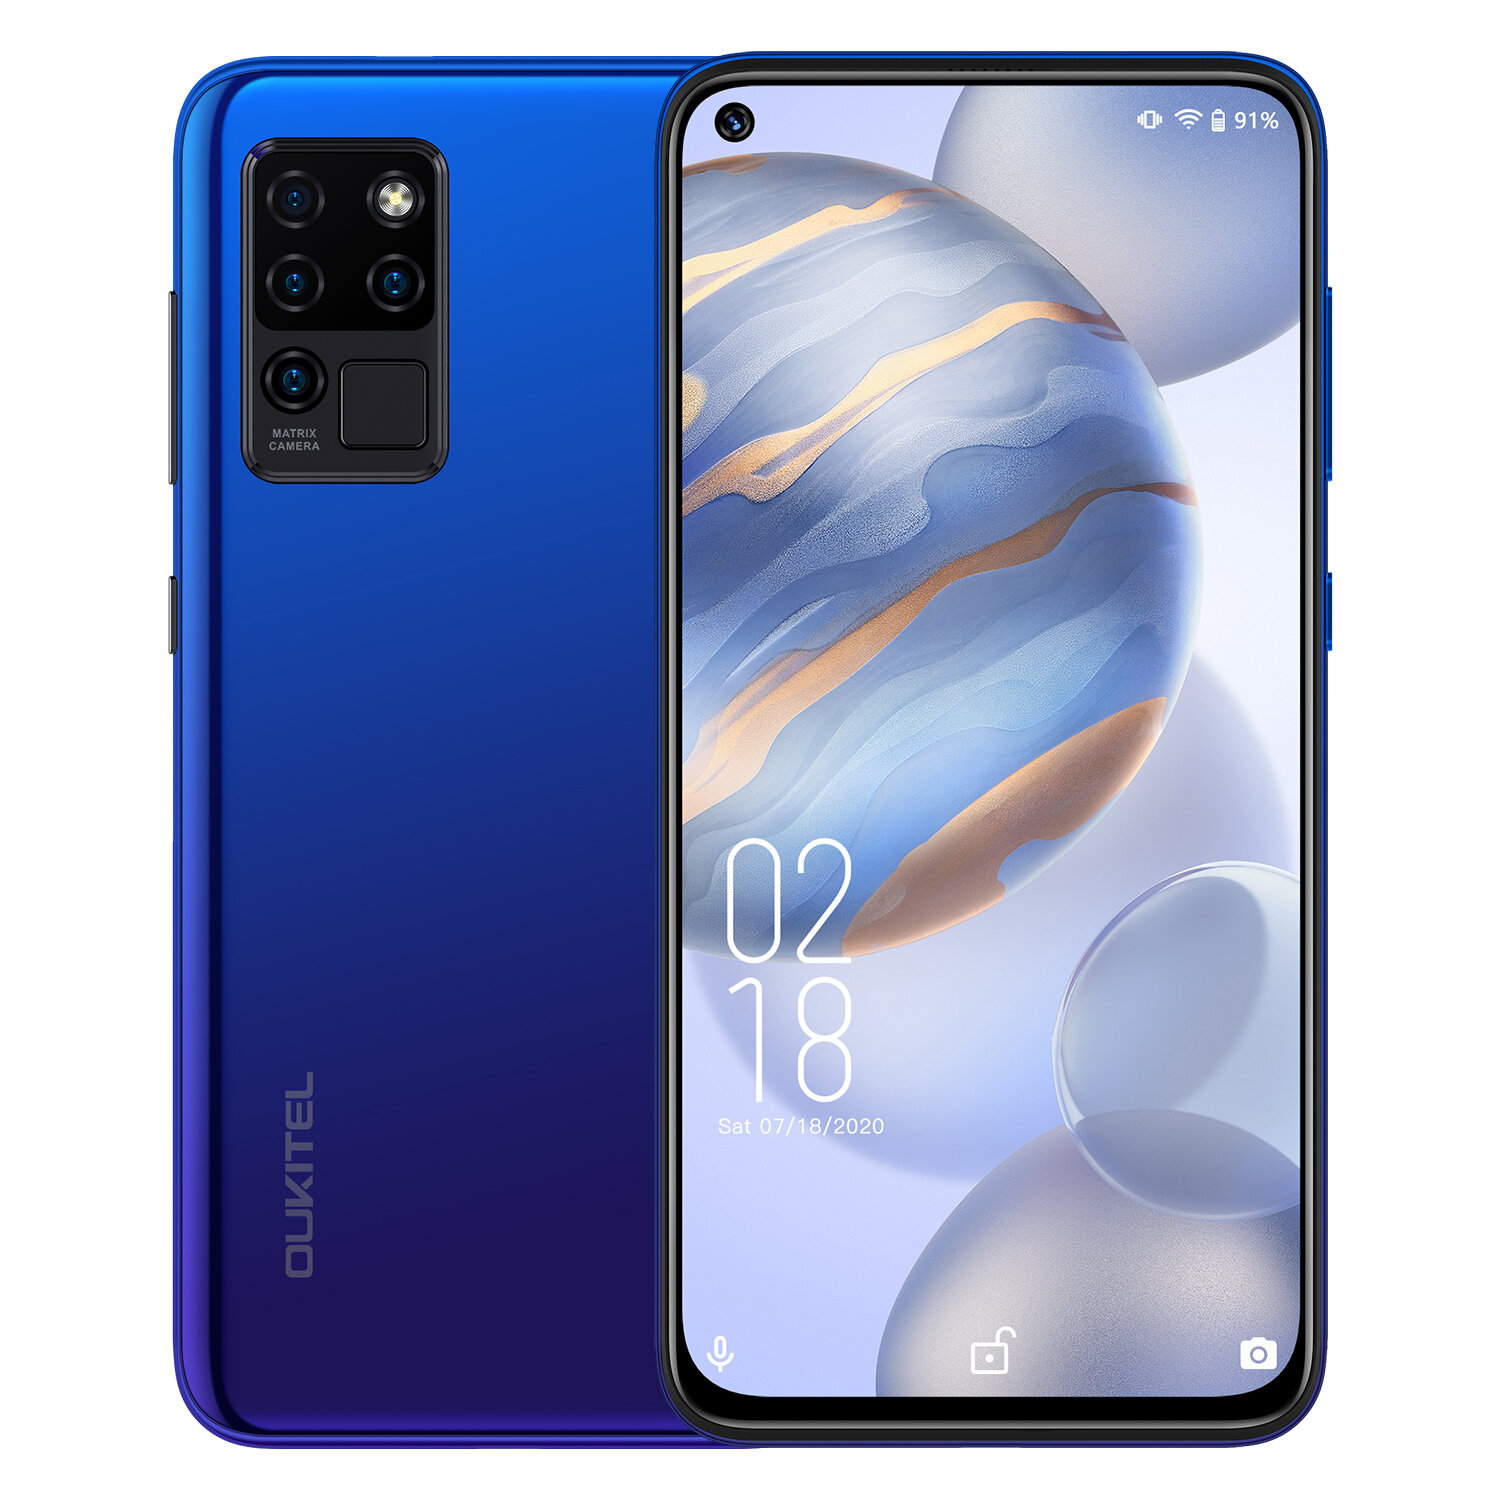 OUKITEL C21 6.4 inch FHD+ Hole Punch Display 4000mAh Android 10 20MP Front Camera 4GB 64GB Helio P60 4G Smartphone - Blue